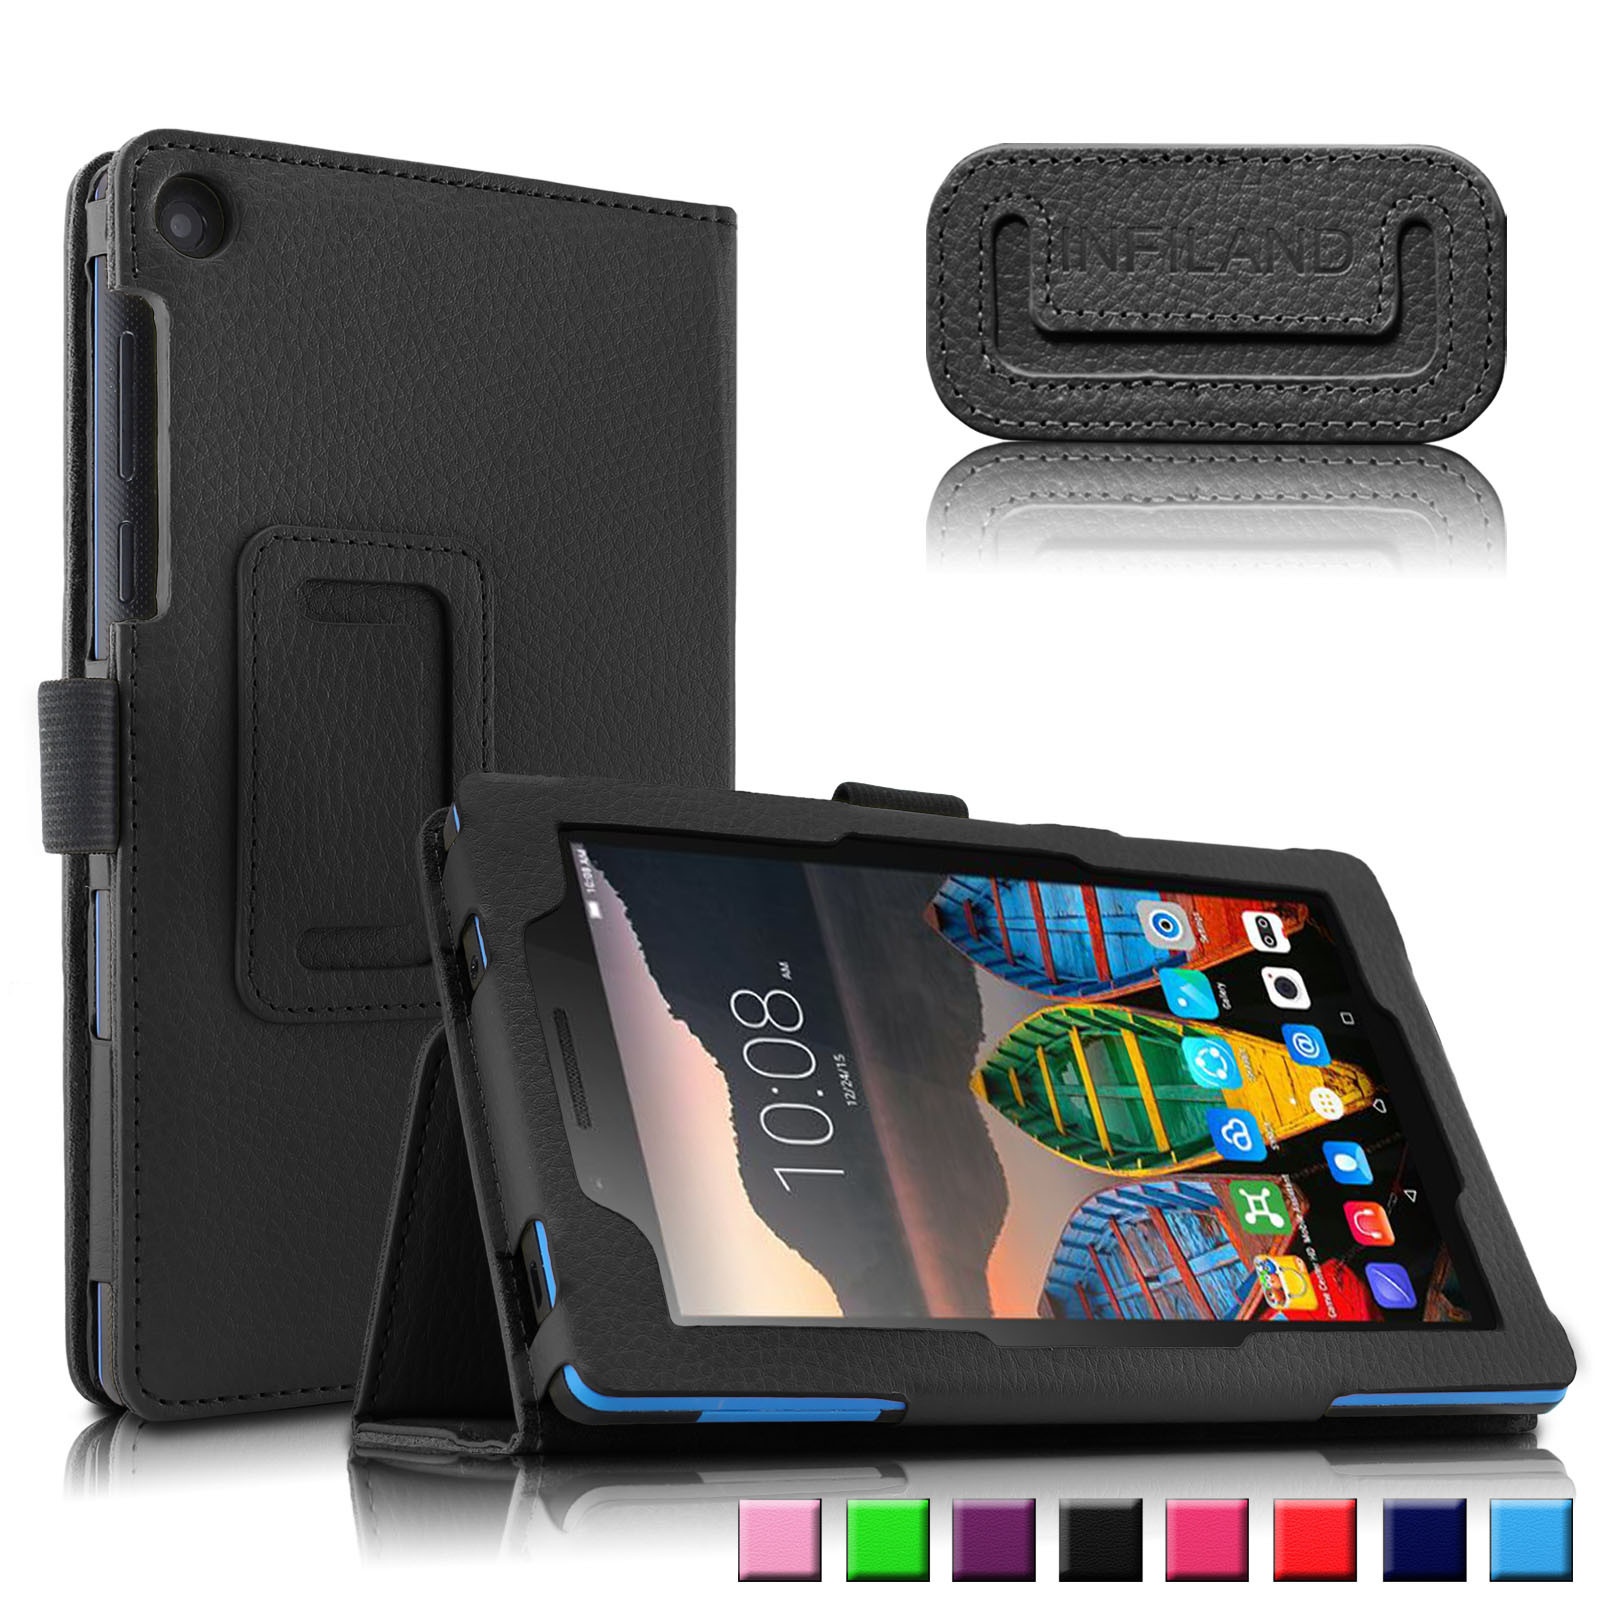 Infiland Folio PU Leather Case Cover For Lenovo Tab 3 Essential 7-Inch Tablet, Black